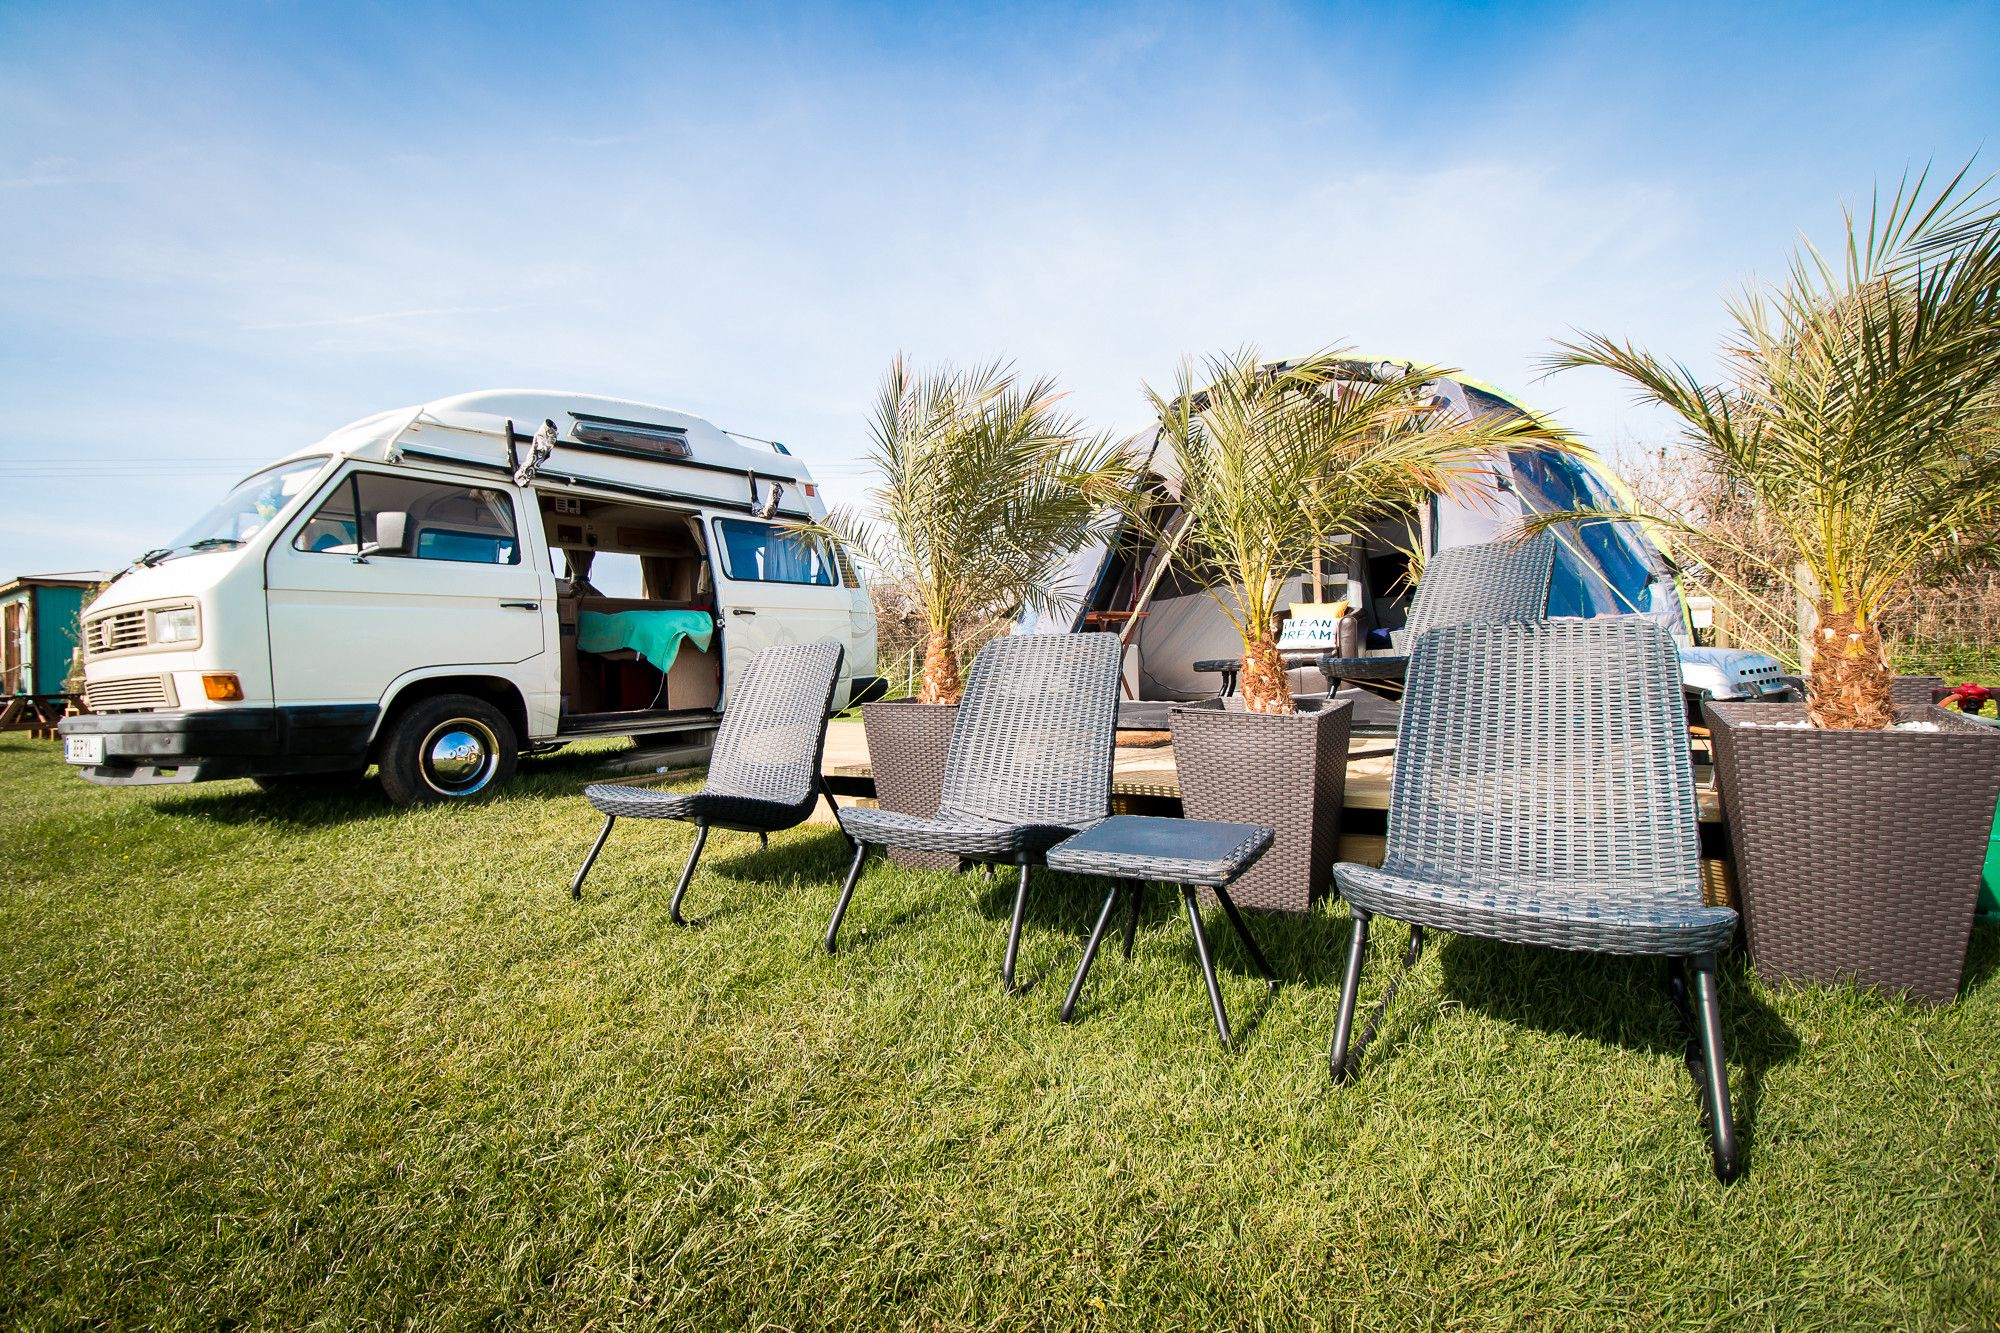 A range of glamping options on the Gower peninsular and just a short drive from the coast.